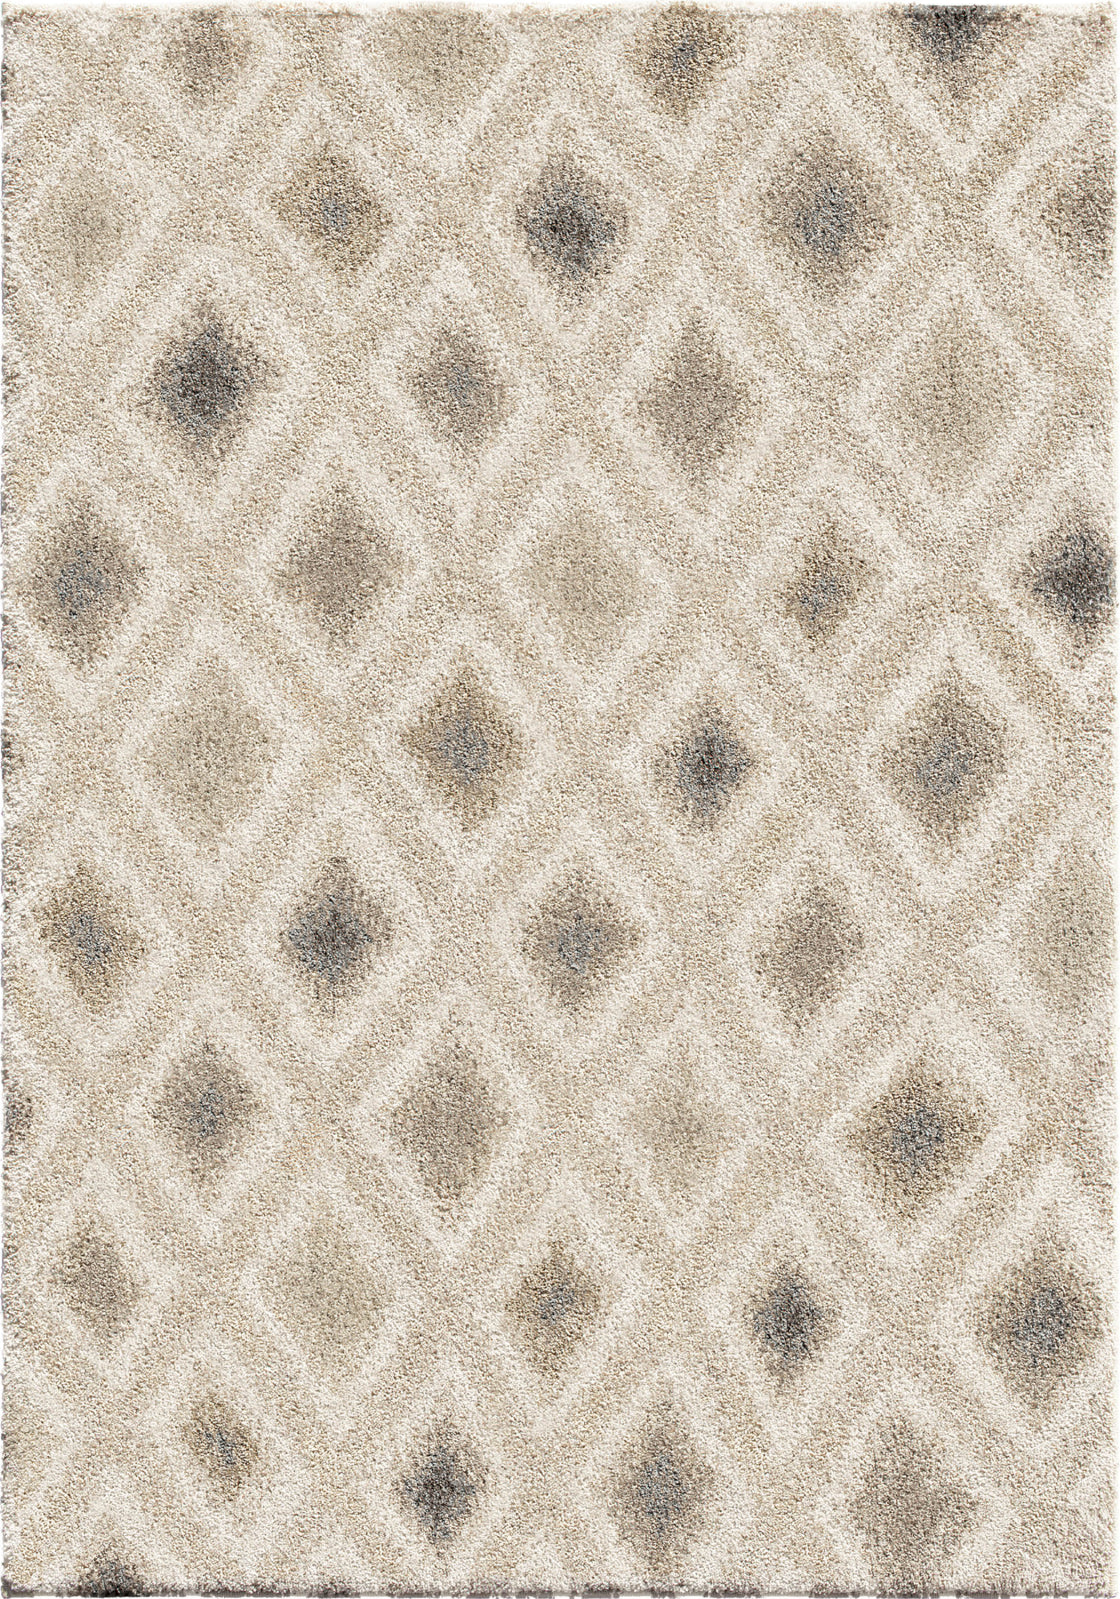 Orian Rugs Mystical Pindleton Natural Area Rug by Palmetto Living main image